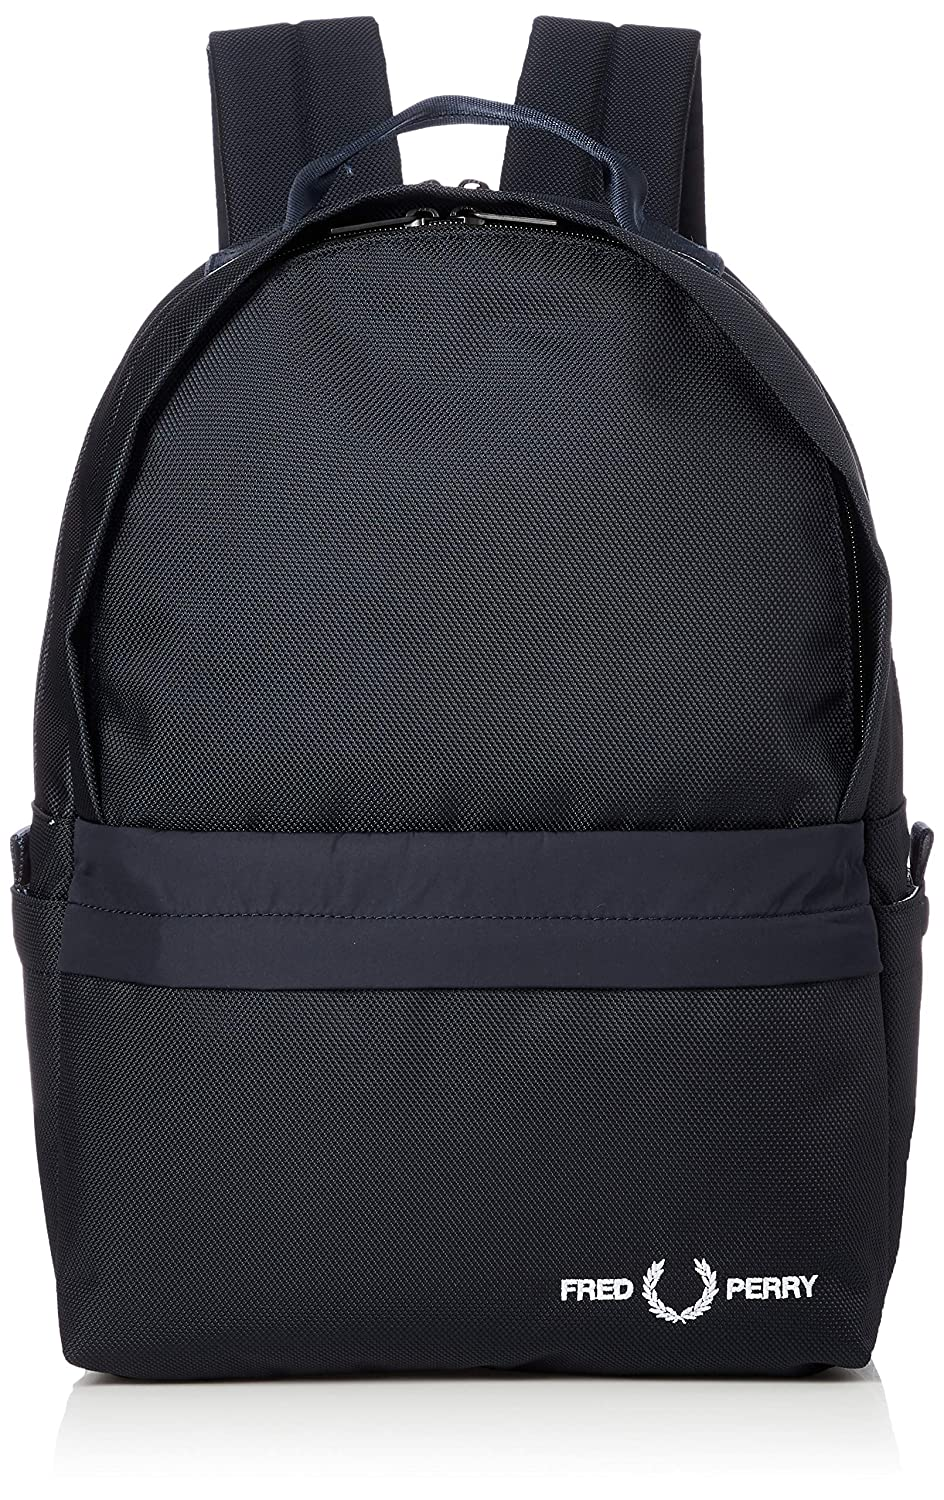 [フレッドペリー] リュック Textured Daypack F9573 B07ND17LX2 01_NAVY